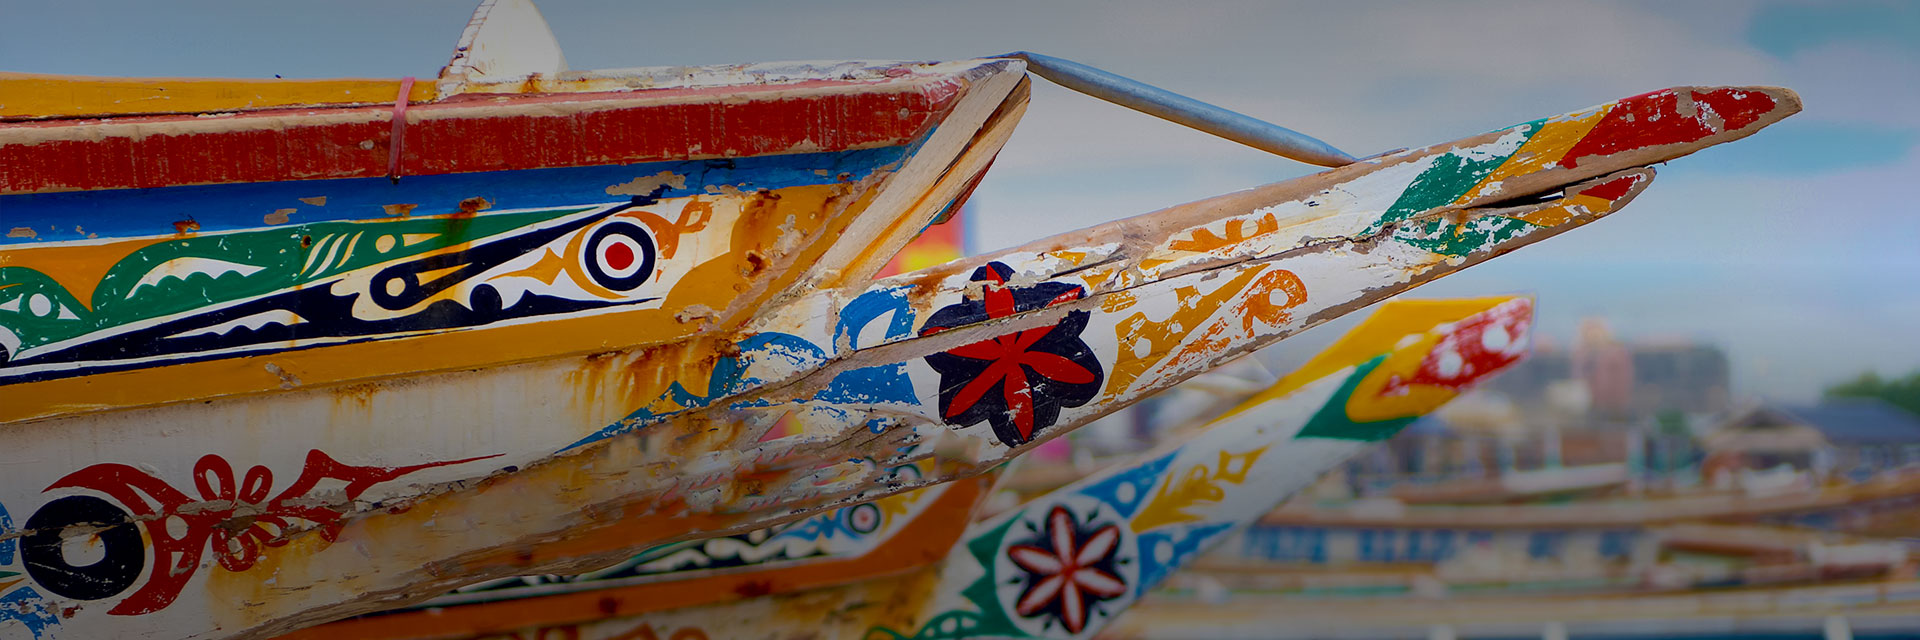 Close up image of a colorfully painted boat